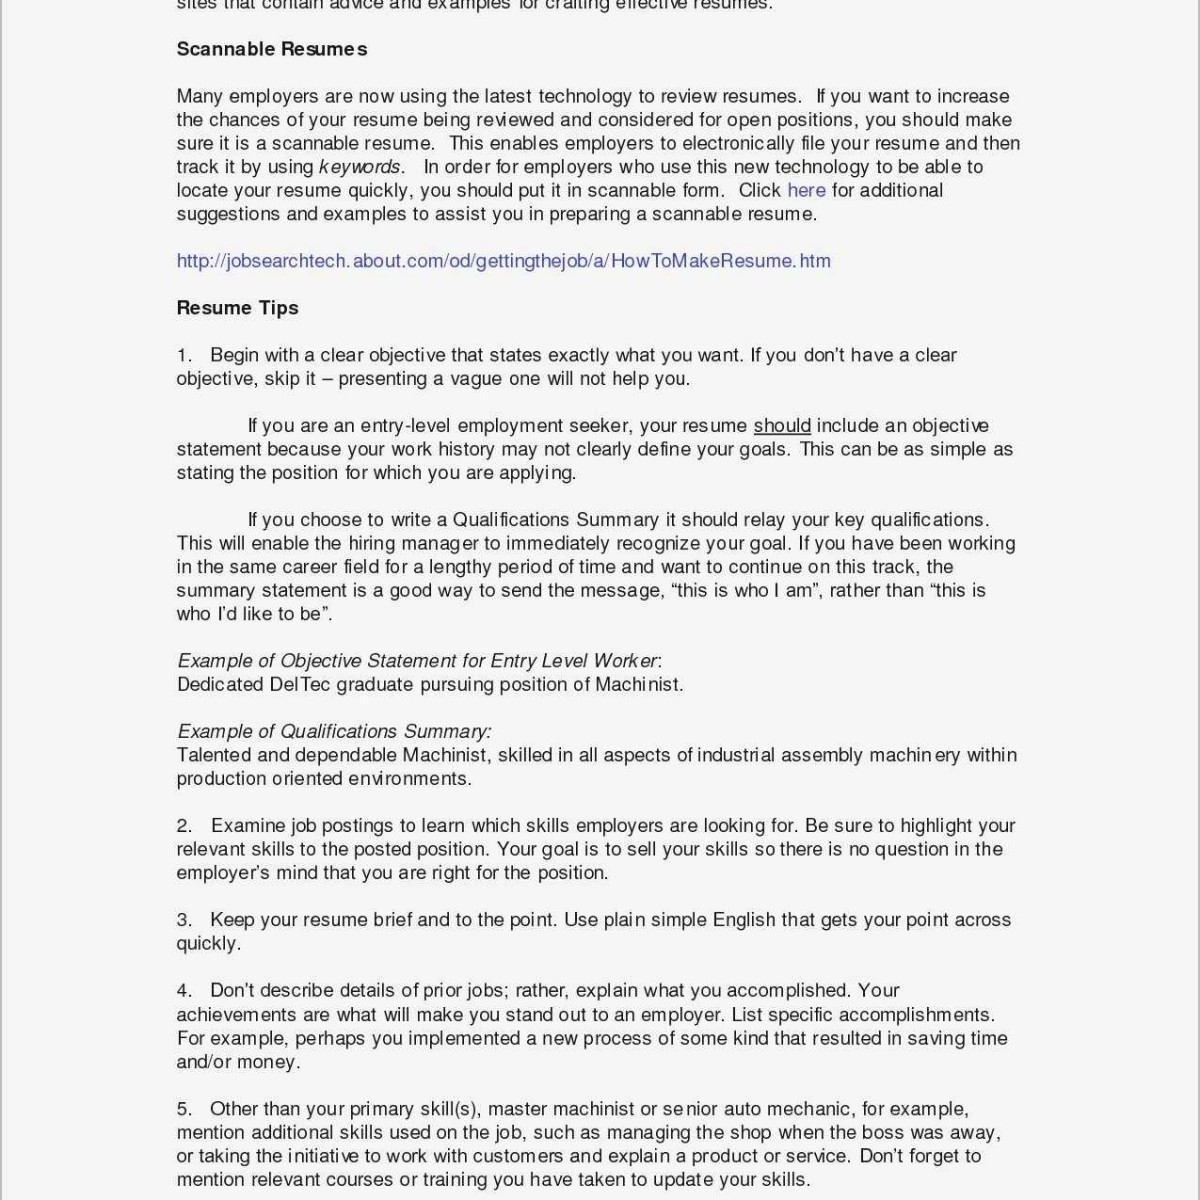 Dishwasher Resume Example - Dishwasher Resume Sample Beautiful Awesome Resume Tutor Luxury